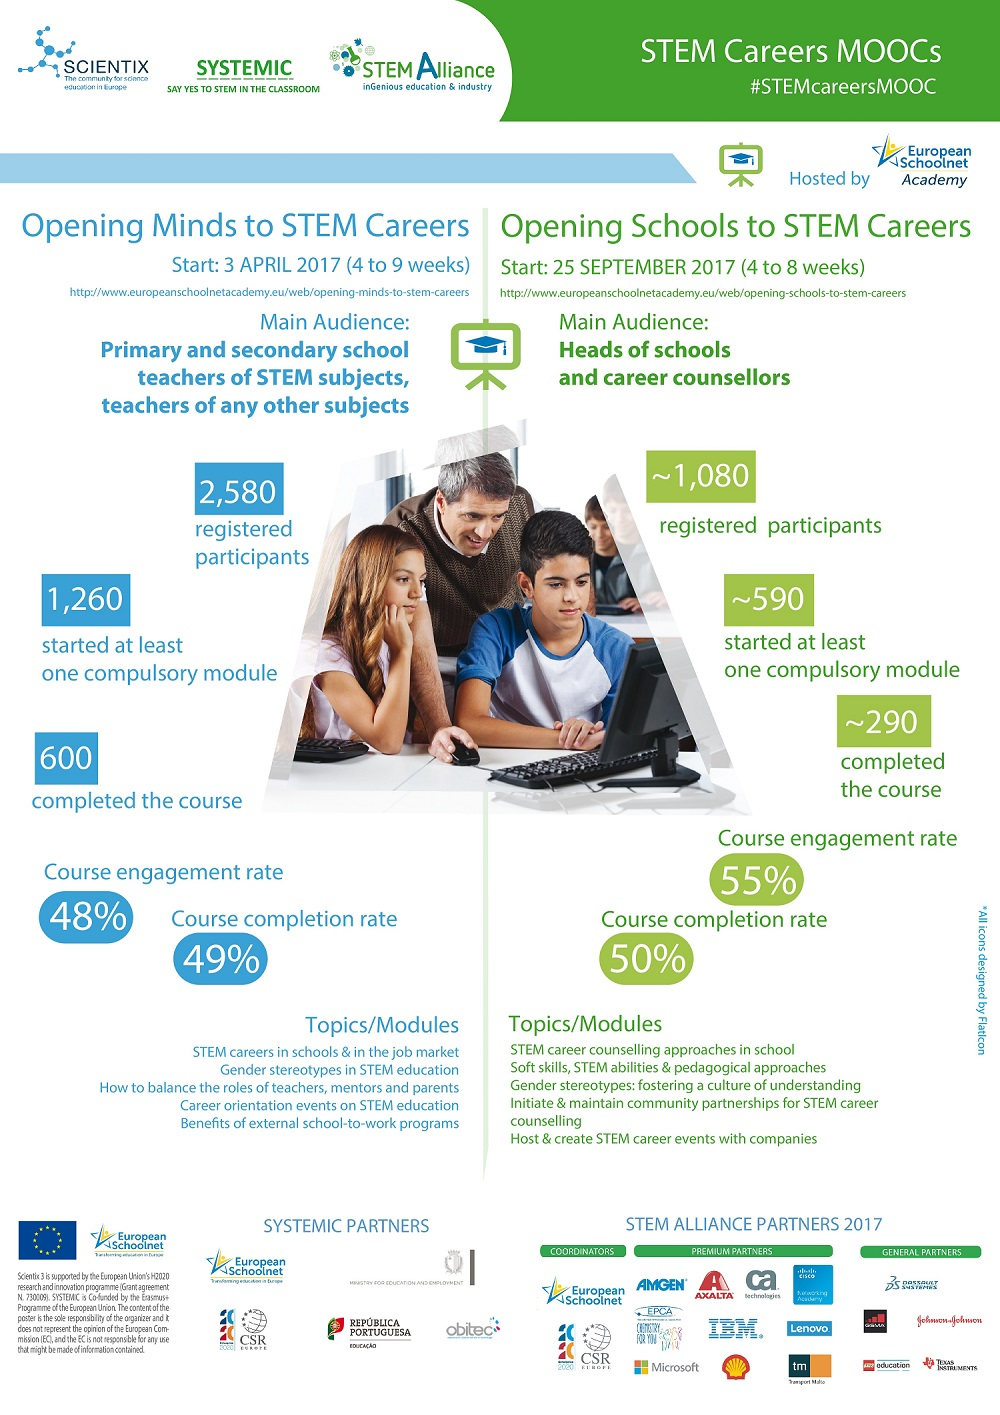 STEM Careers MOOCs Results 2017